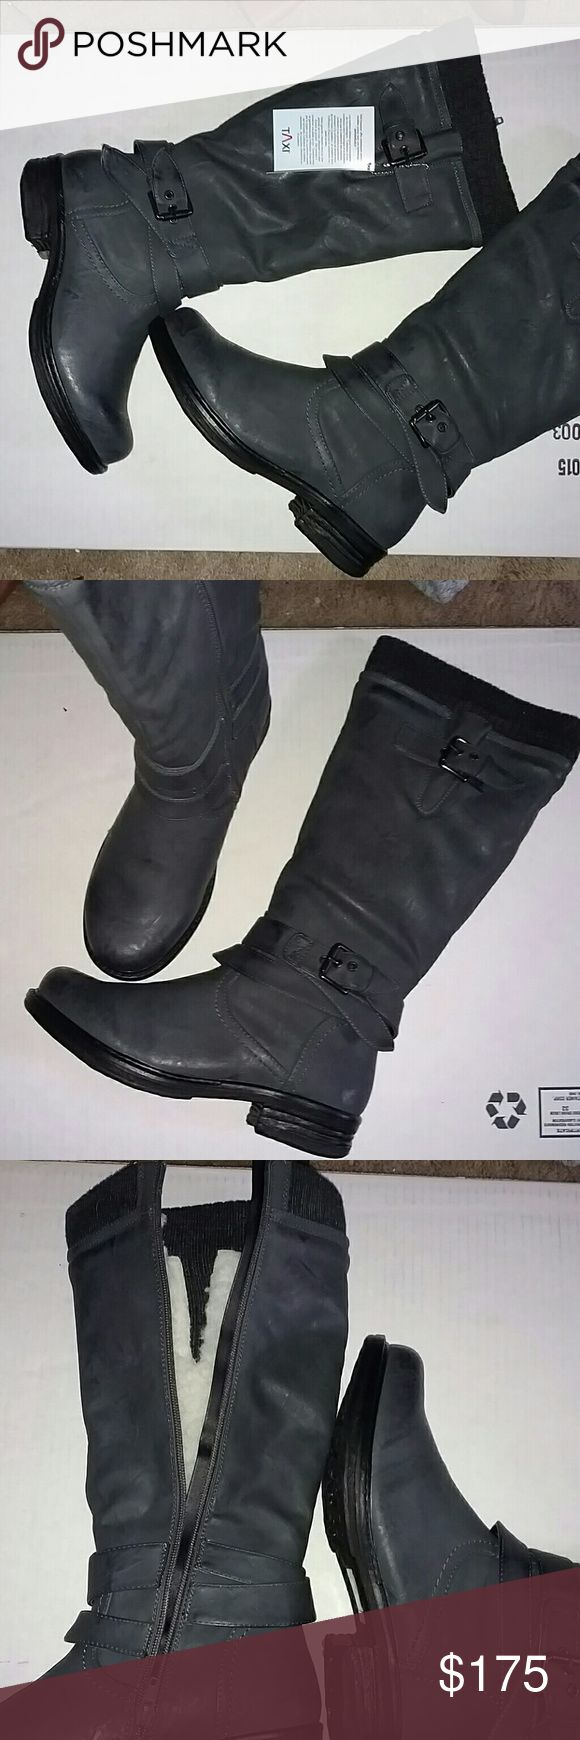 NIB TALL GRAY LEATHER FLEECE LINED BOOTS from TAXI THESE ARE AMAZING !! WATERPROOF LEATHER Outside Snow & Rain will never get inside !! See pic :) Buckle Details AMAZING Gray Color These are not wide calf, not a lot of Stretch ( Will measure for you ) Rounded Toe ~~I would keep but purchased from fellow Posher ankle DARKER gray boots I wanted~~ But ...... Will keep for next season if not sold :)  Fleece Lined for Xtra Warm Feet !!  Purchased @ work during a Boot Sale so not a lot of wiggle…